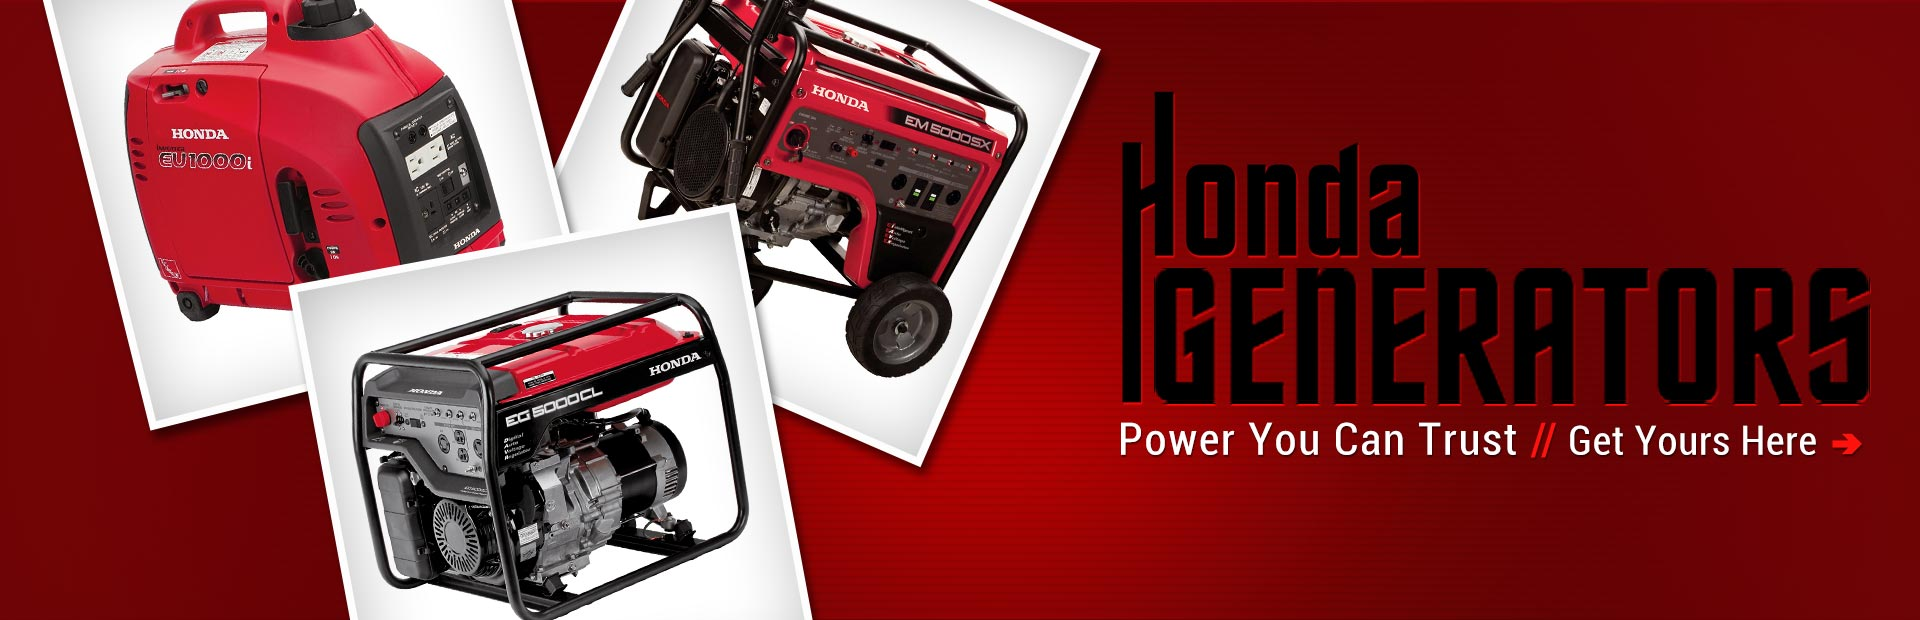 Honda Blowers Dealer Miami Fl >> Home Chadwell Sons Inc Miami Fl 305 233 7672